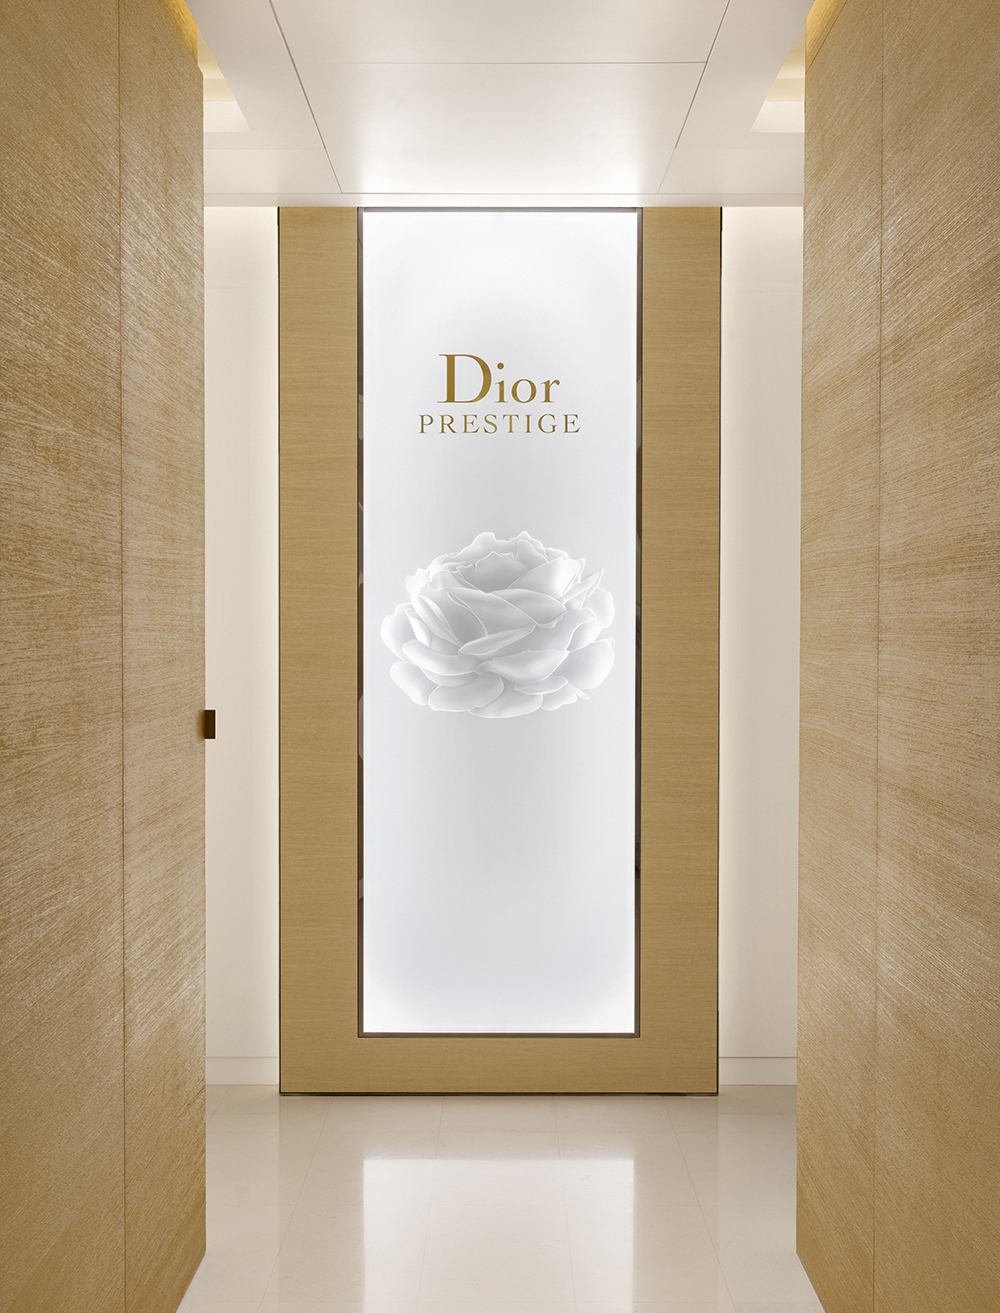 Dior Institut in Paris was created by Christian Dior and Hôtel Plaza Athénée in 2008.